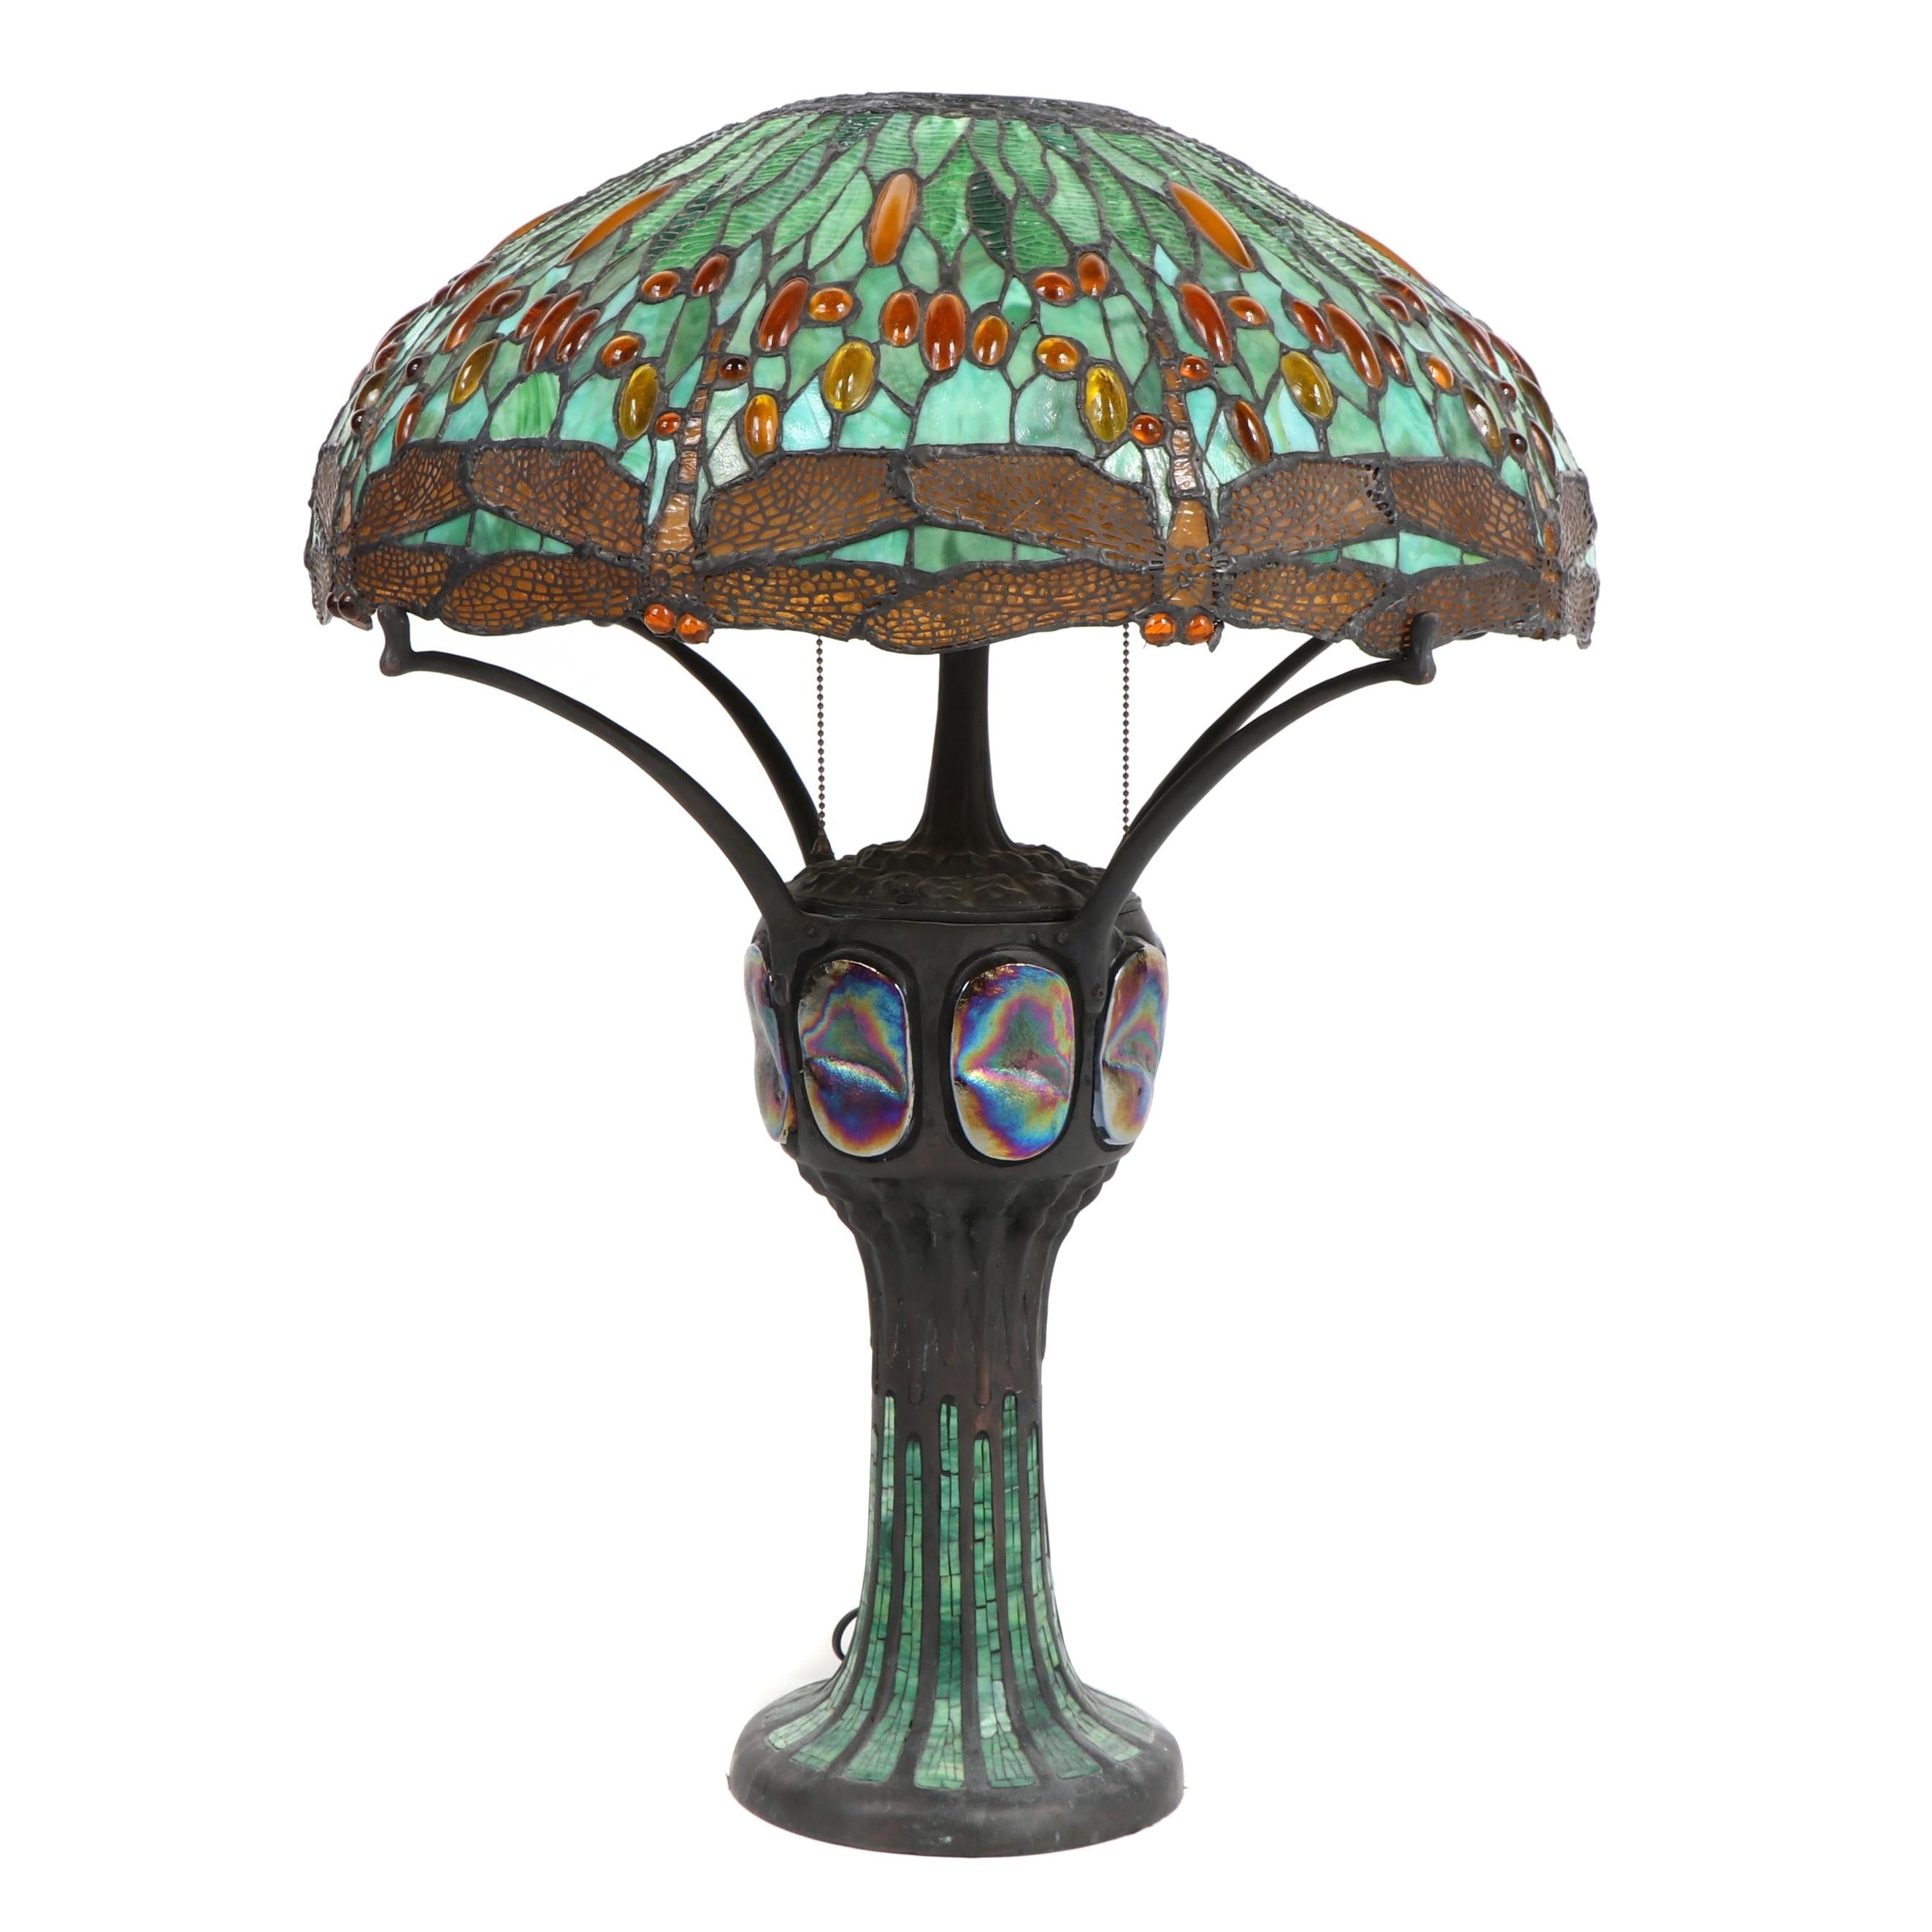 JSW Studios Leaded Glass, Mosaic and Patinated Metal Dragonfly Table Lamp